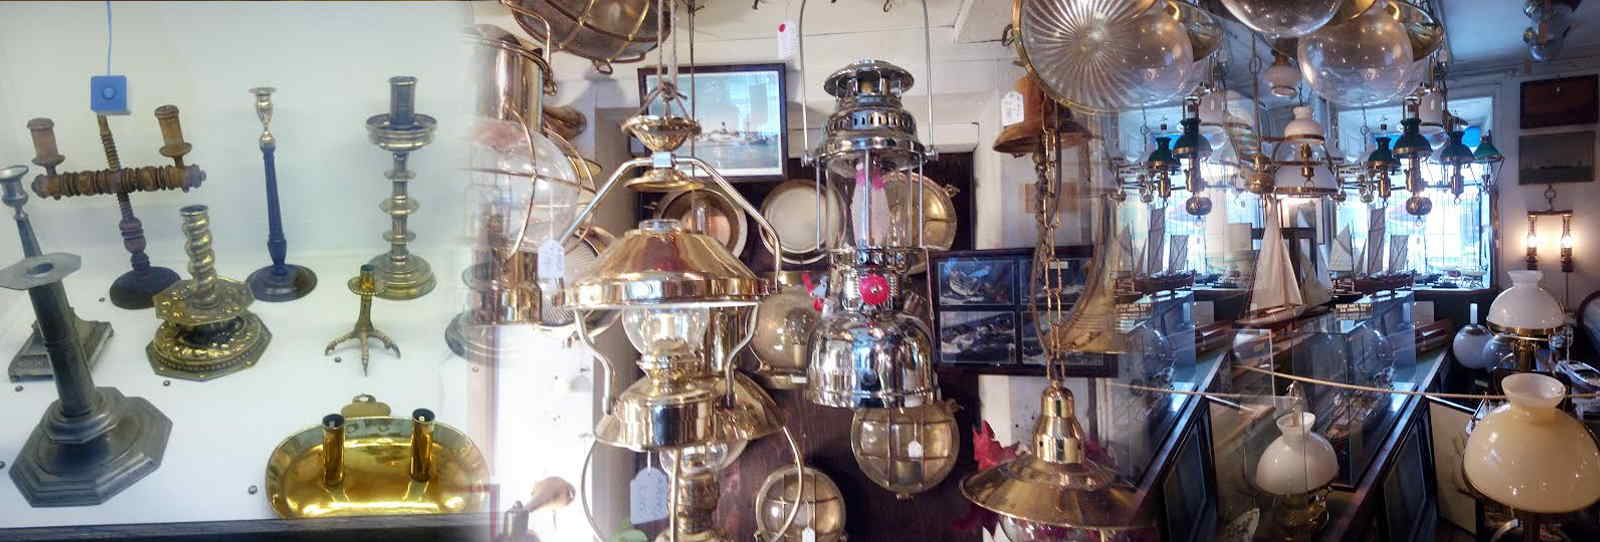 antiques ship lamps, candle holders